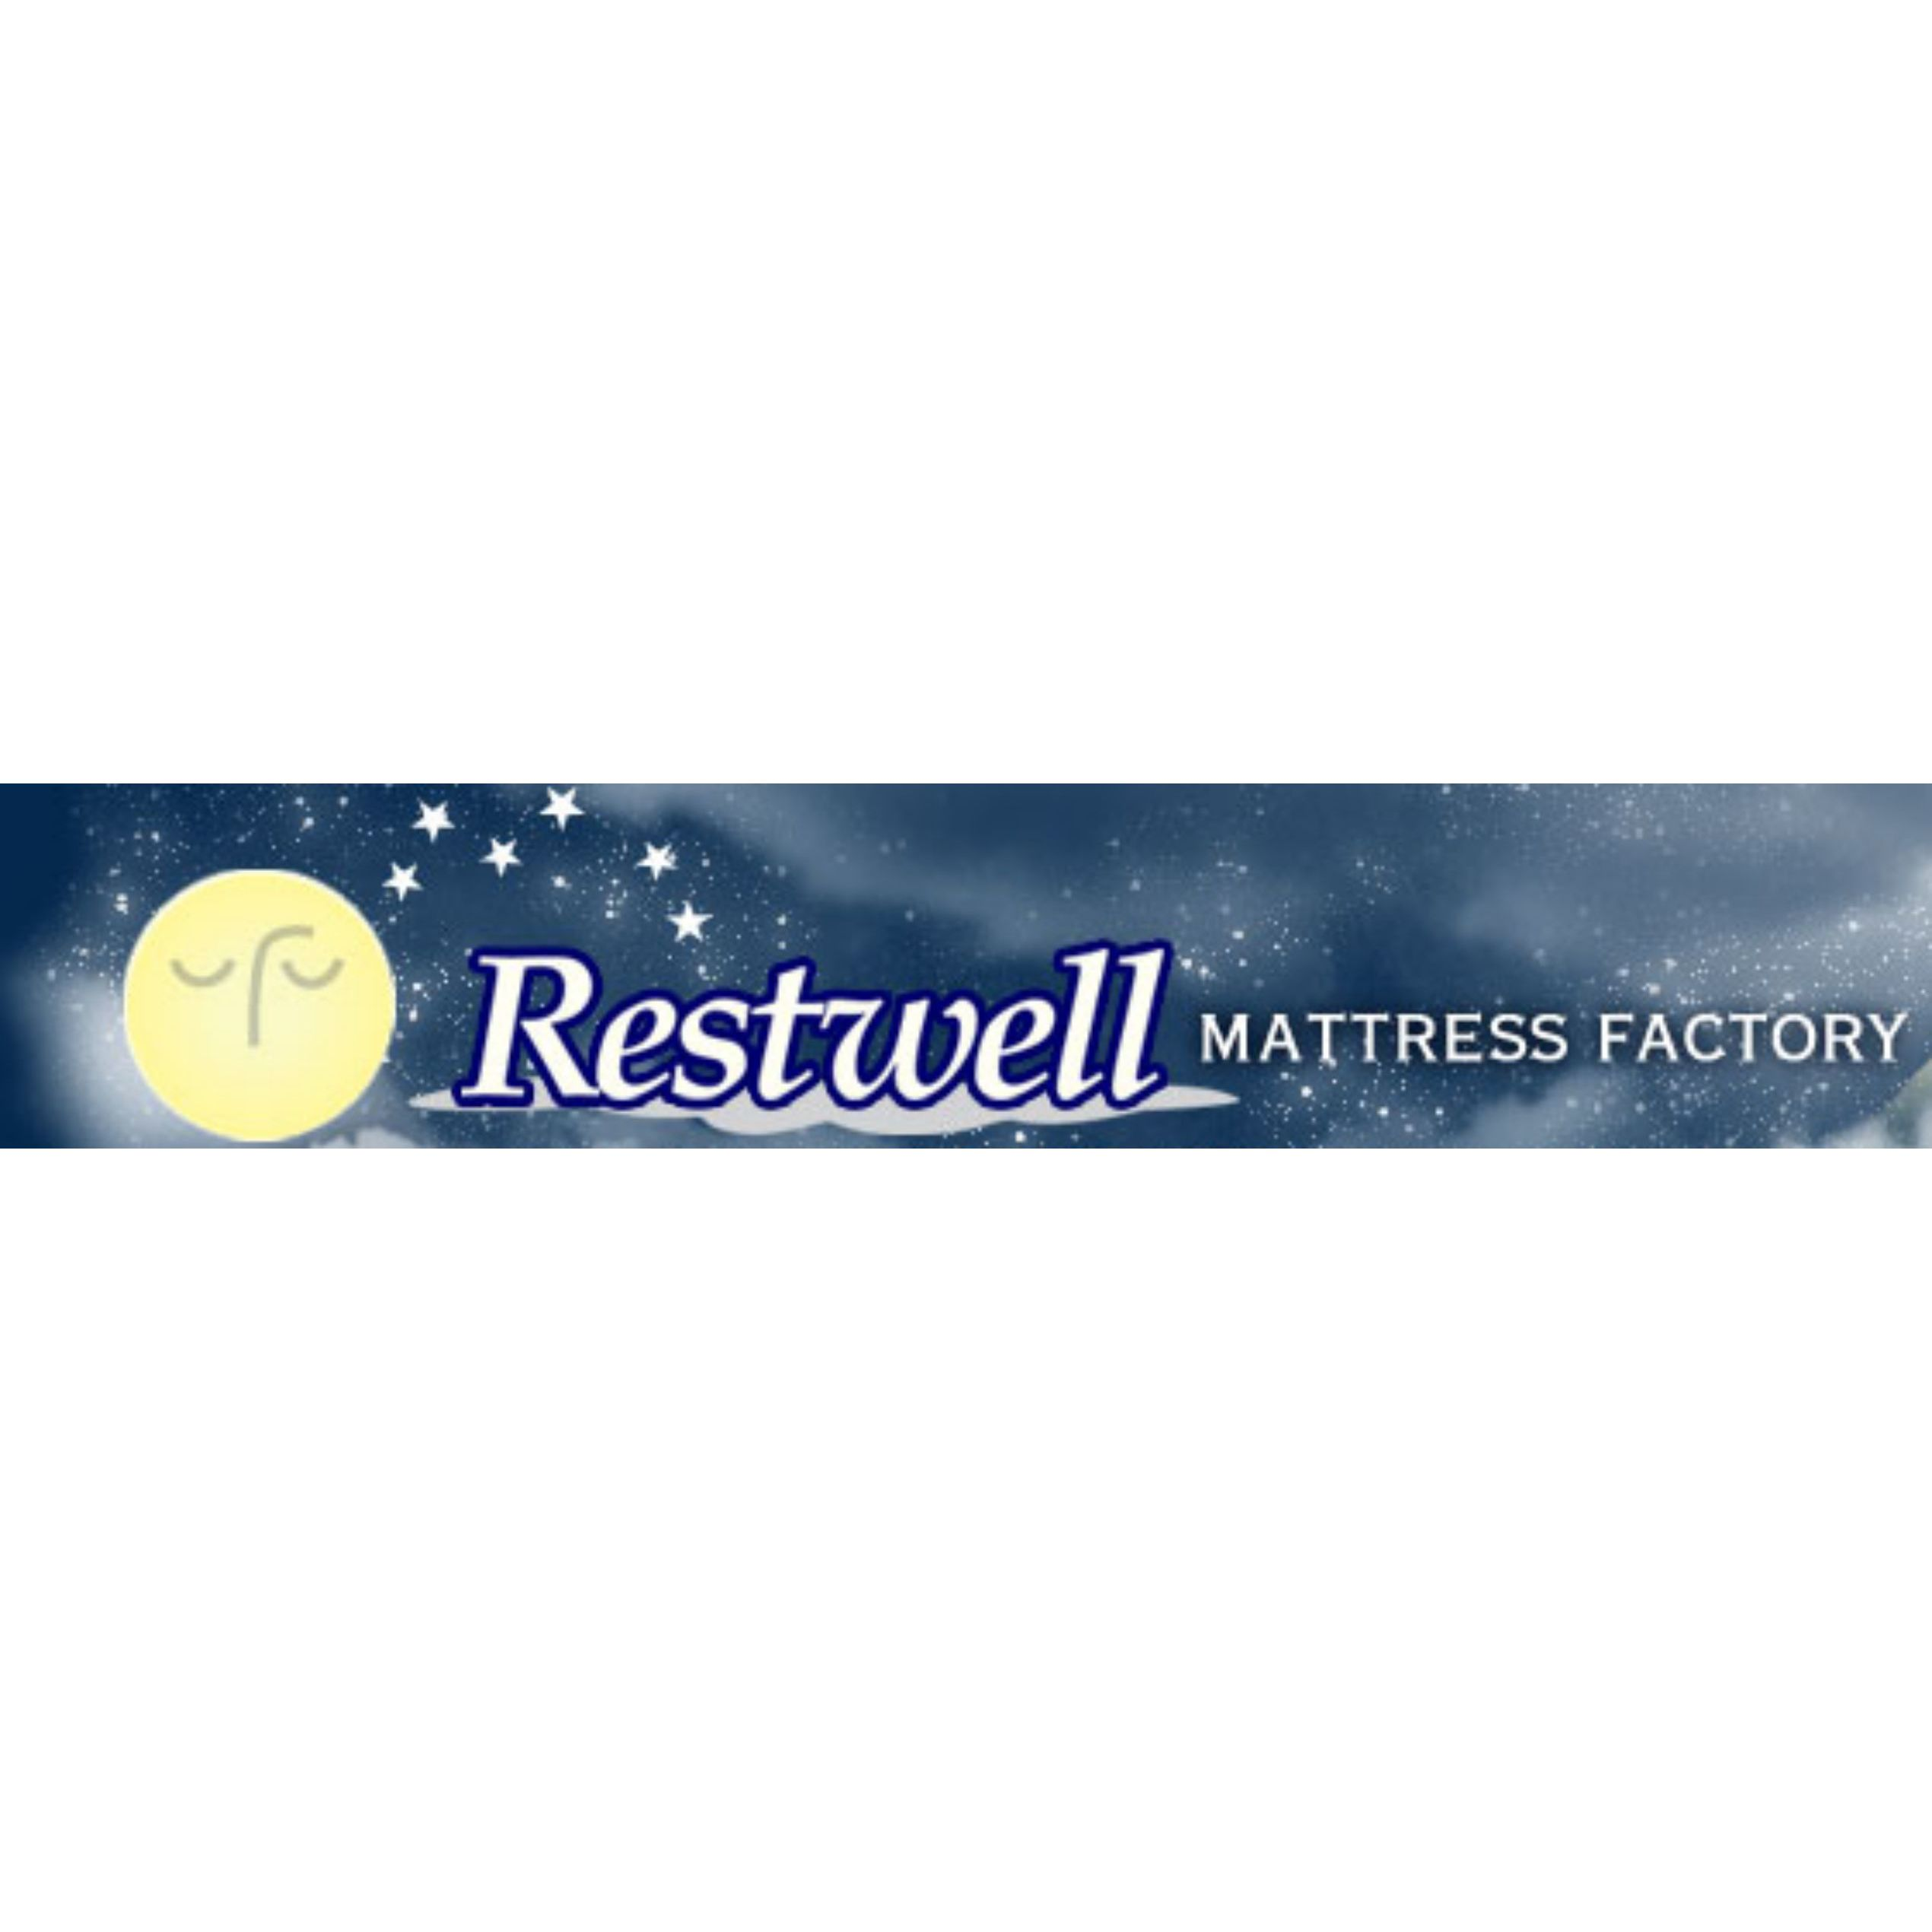 Restwell Mattress Factory Restwell Mattress Factory Coupons near me in St. Louis Park | 8coupons